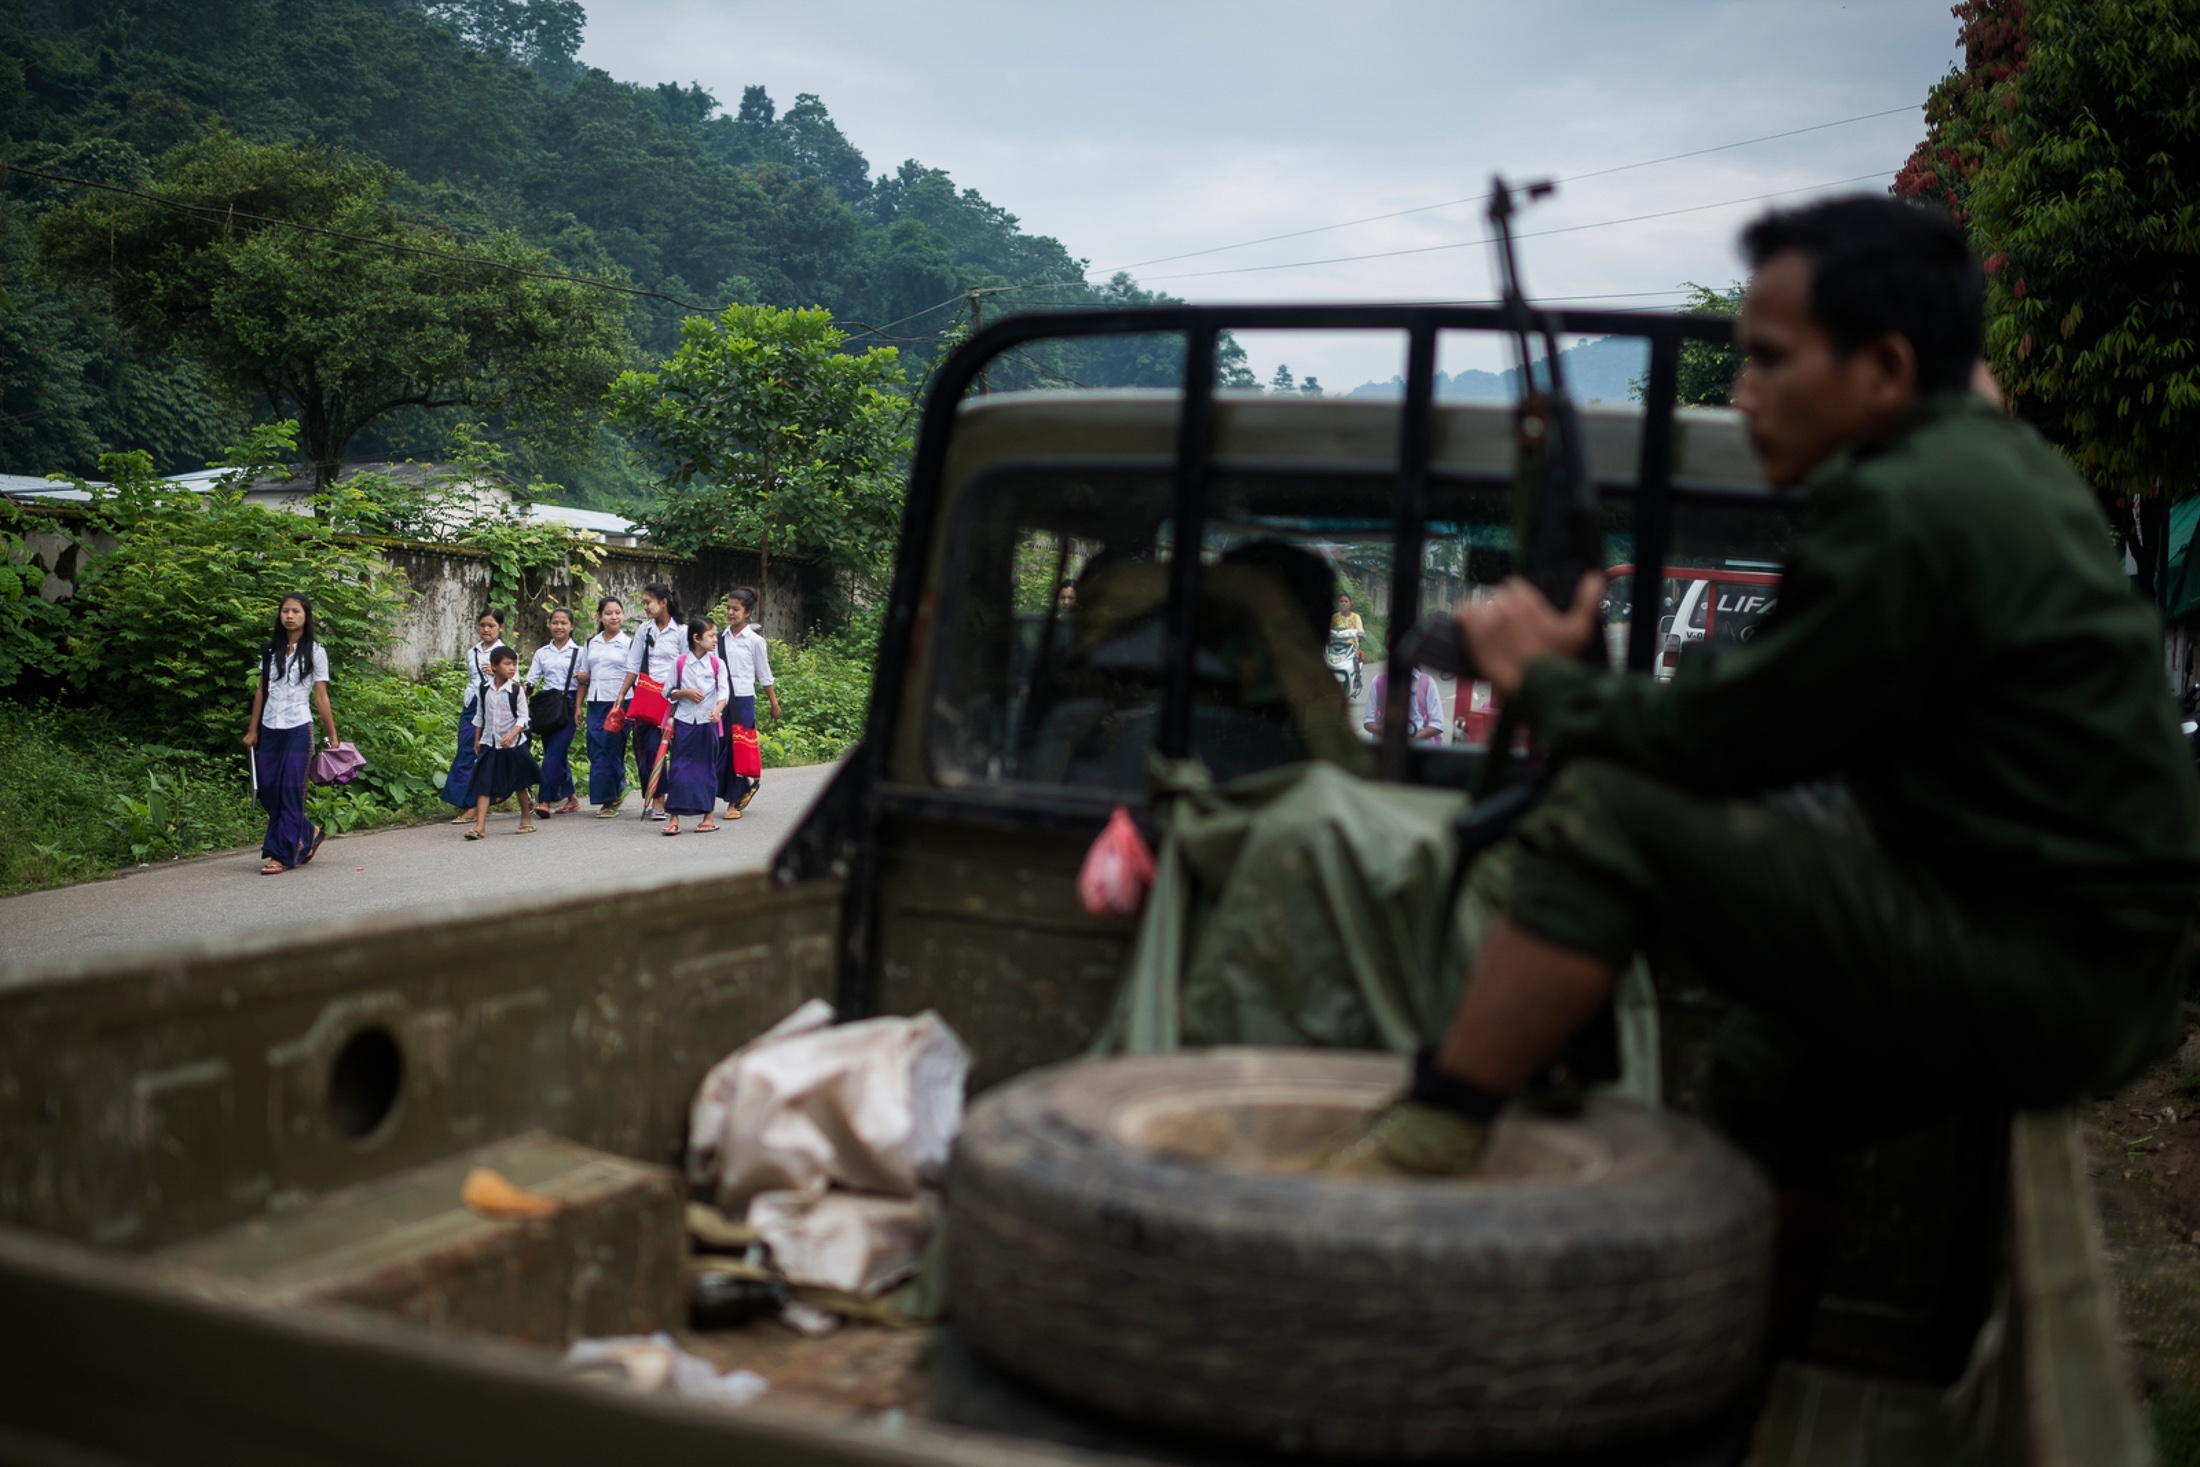 A group of children passes a Kachin Independence Army rebel truck on their way to school in Laiza, Kachin state, Myanmar. The KIA have been fighting for more autonomy and a federal government, where minorities like the Kachin could fully practice their culture and language, and with more control over the natural resources in the region.